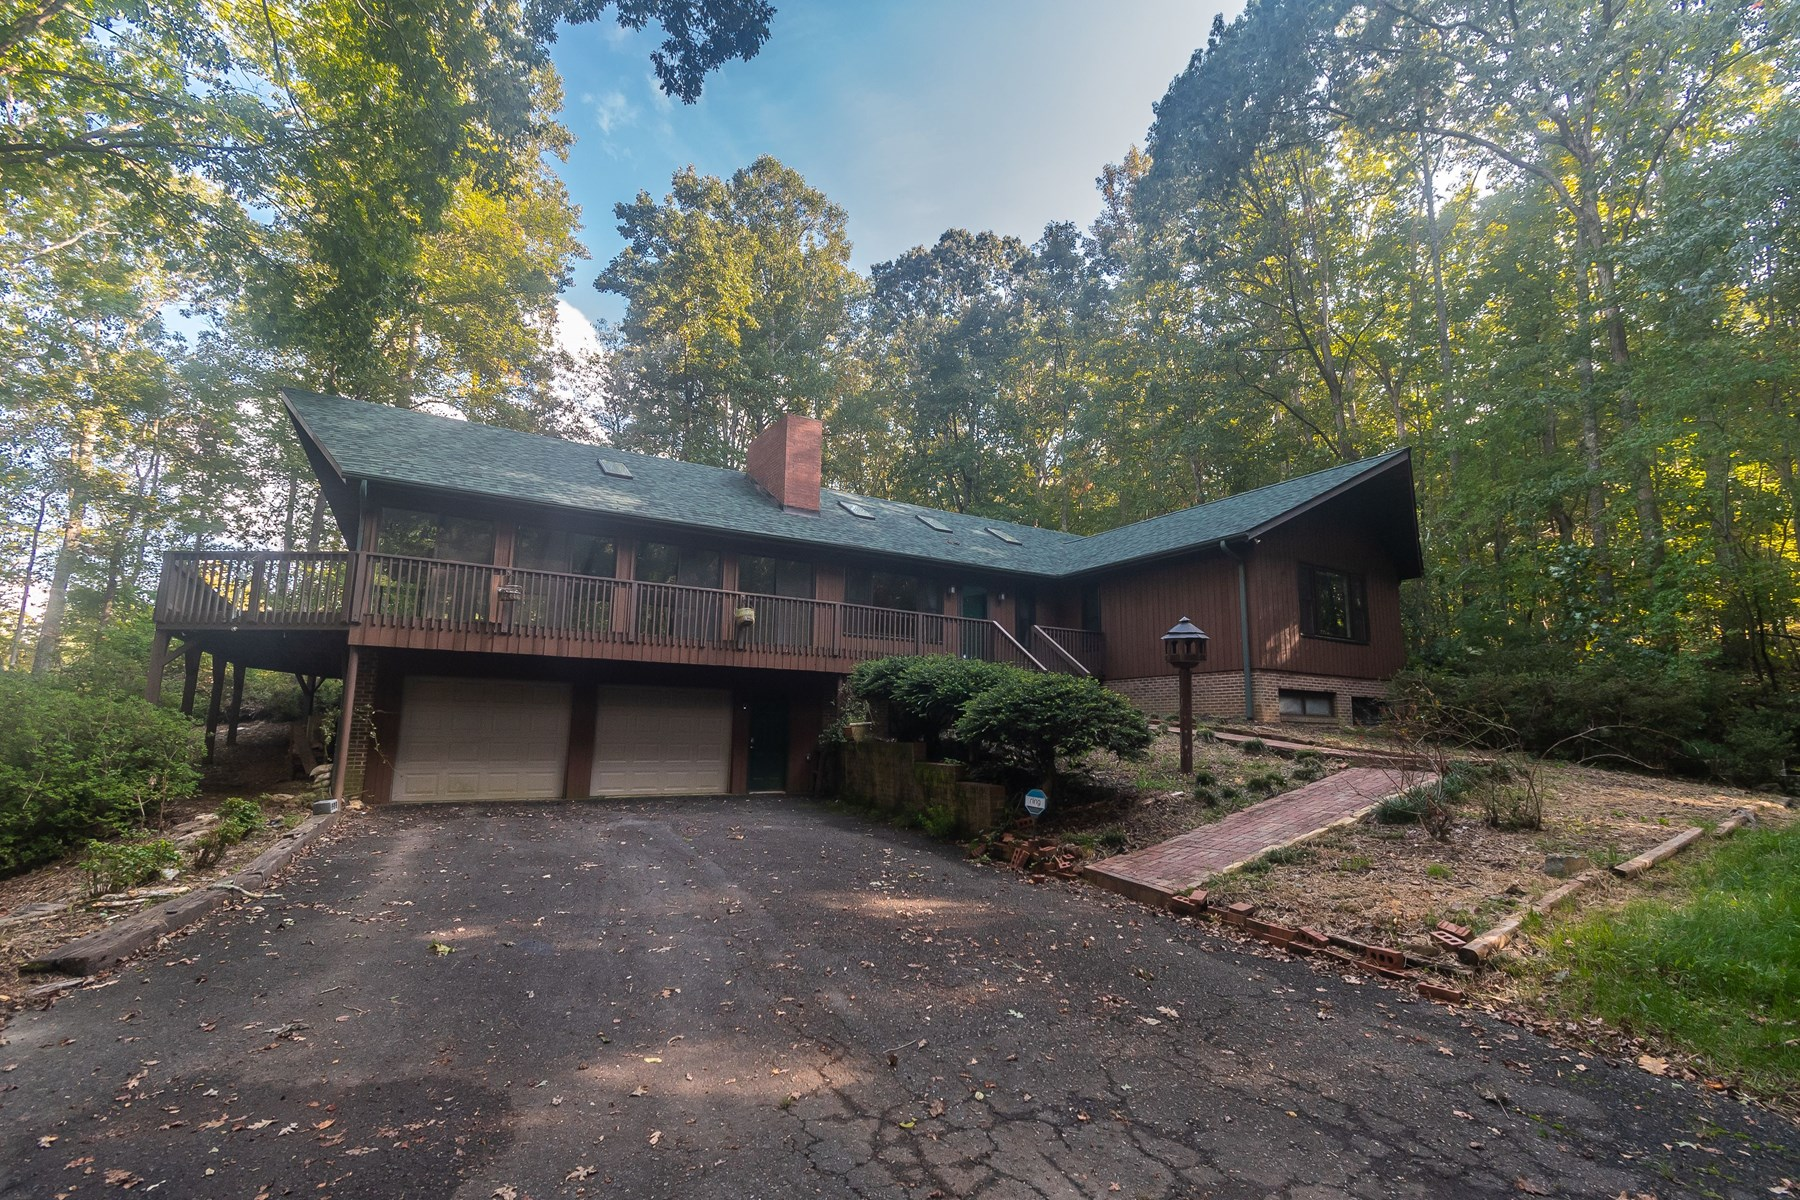 Home For Sale Buena Vista Drive Pilot Mountain N.C.